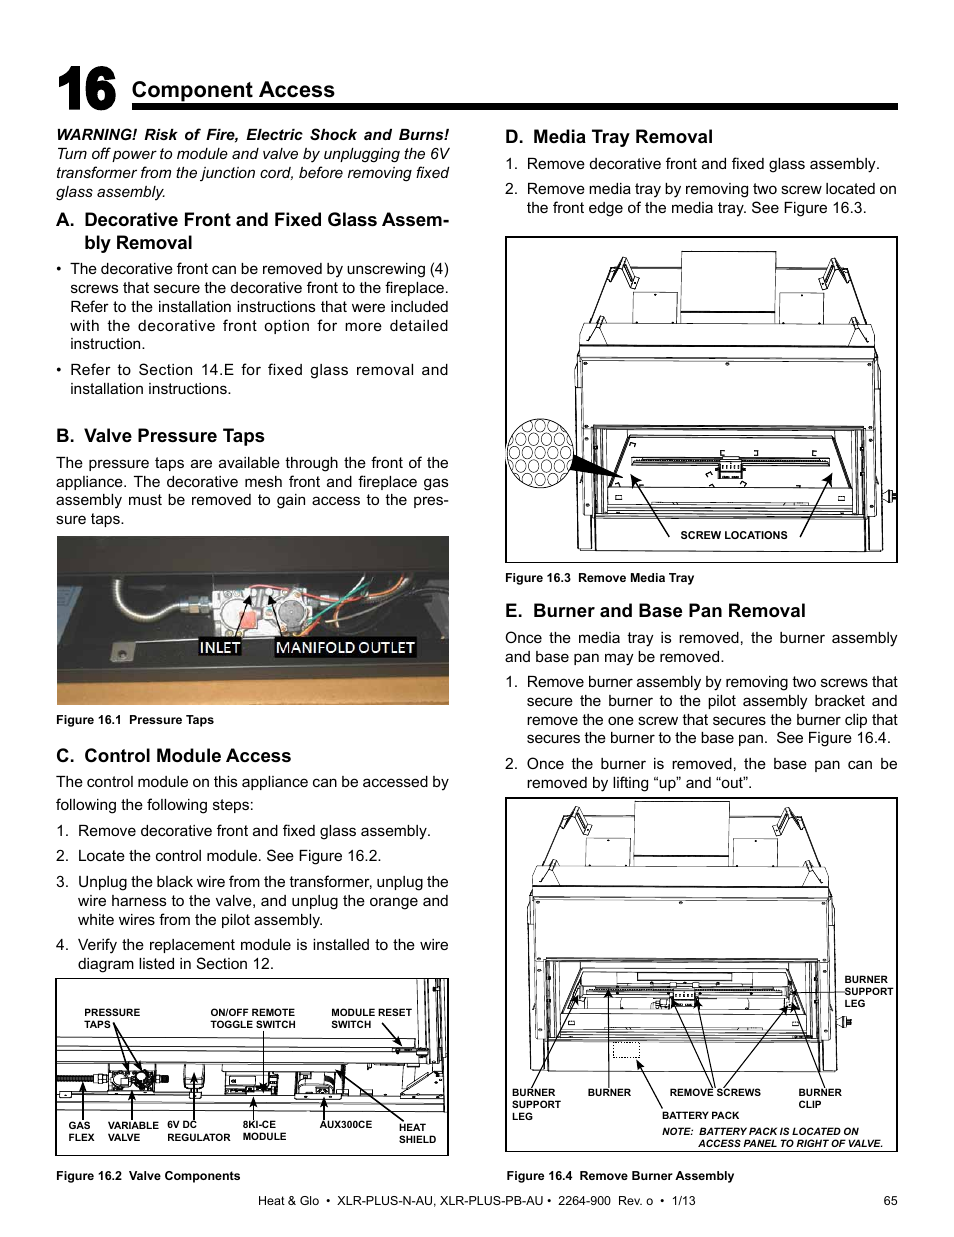 Component Access D Media Tray Removal E Burner And Base Pan Xlr Transformer Wiring Diagram Heat Glo Fireplace Plus Pb Au User Manual Page 65 77